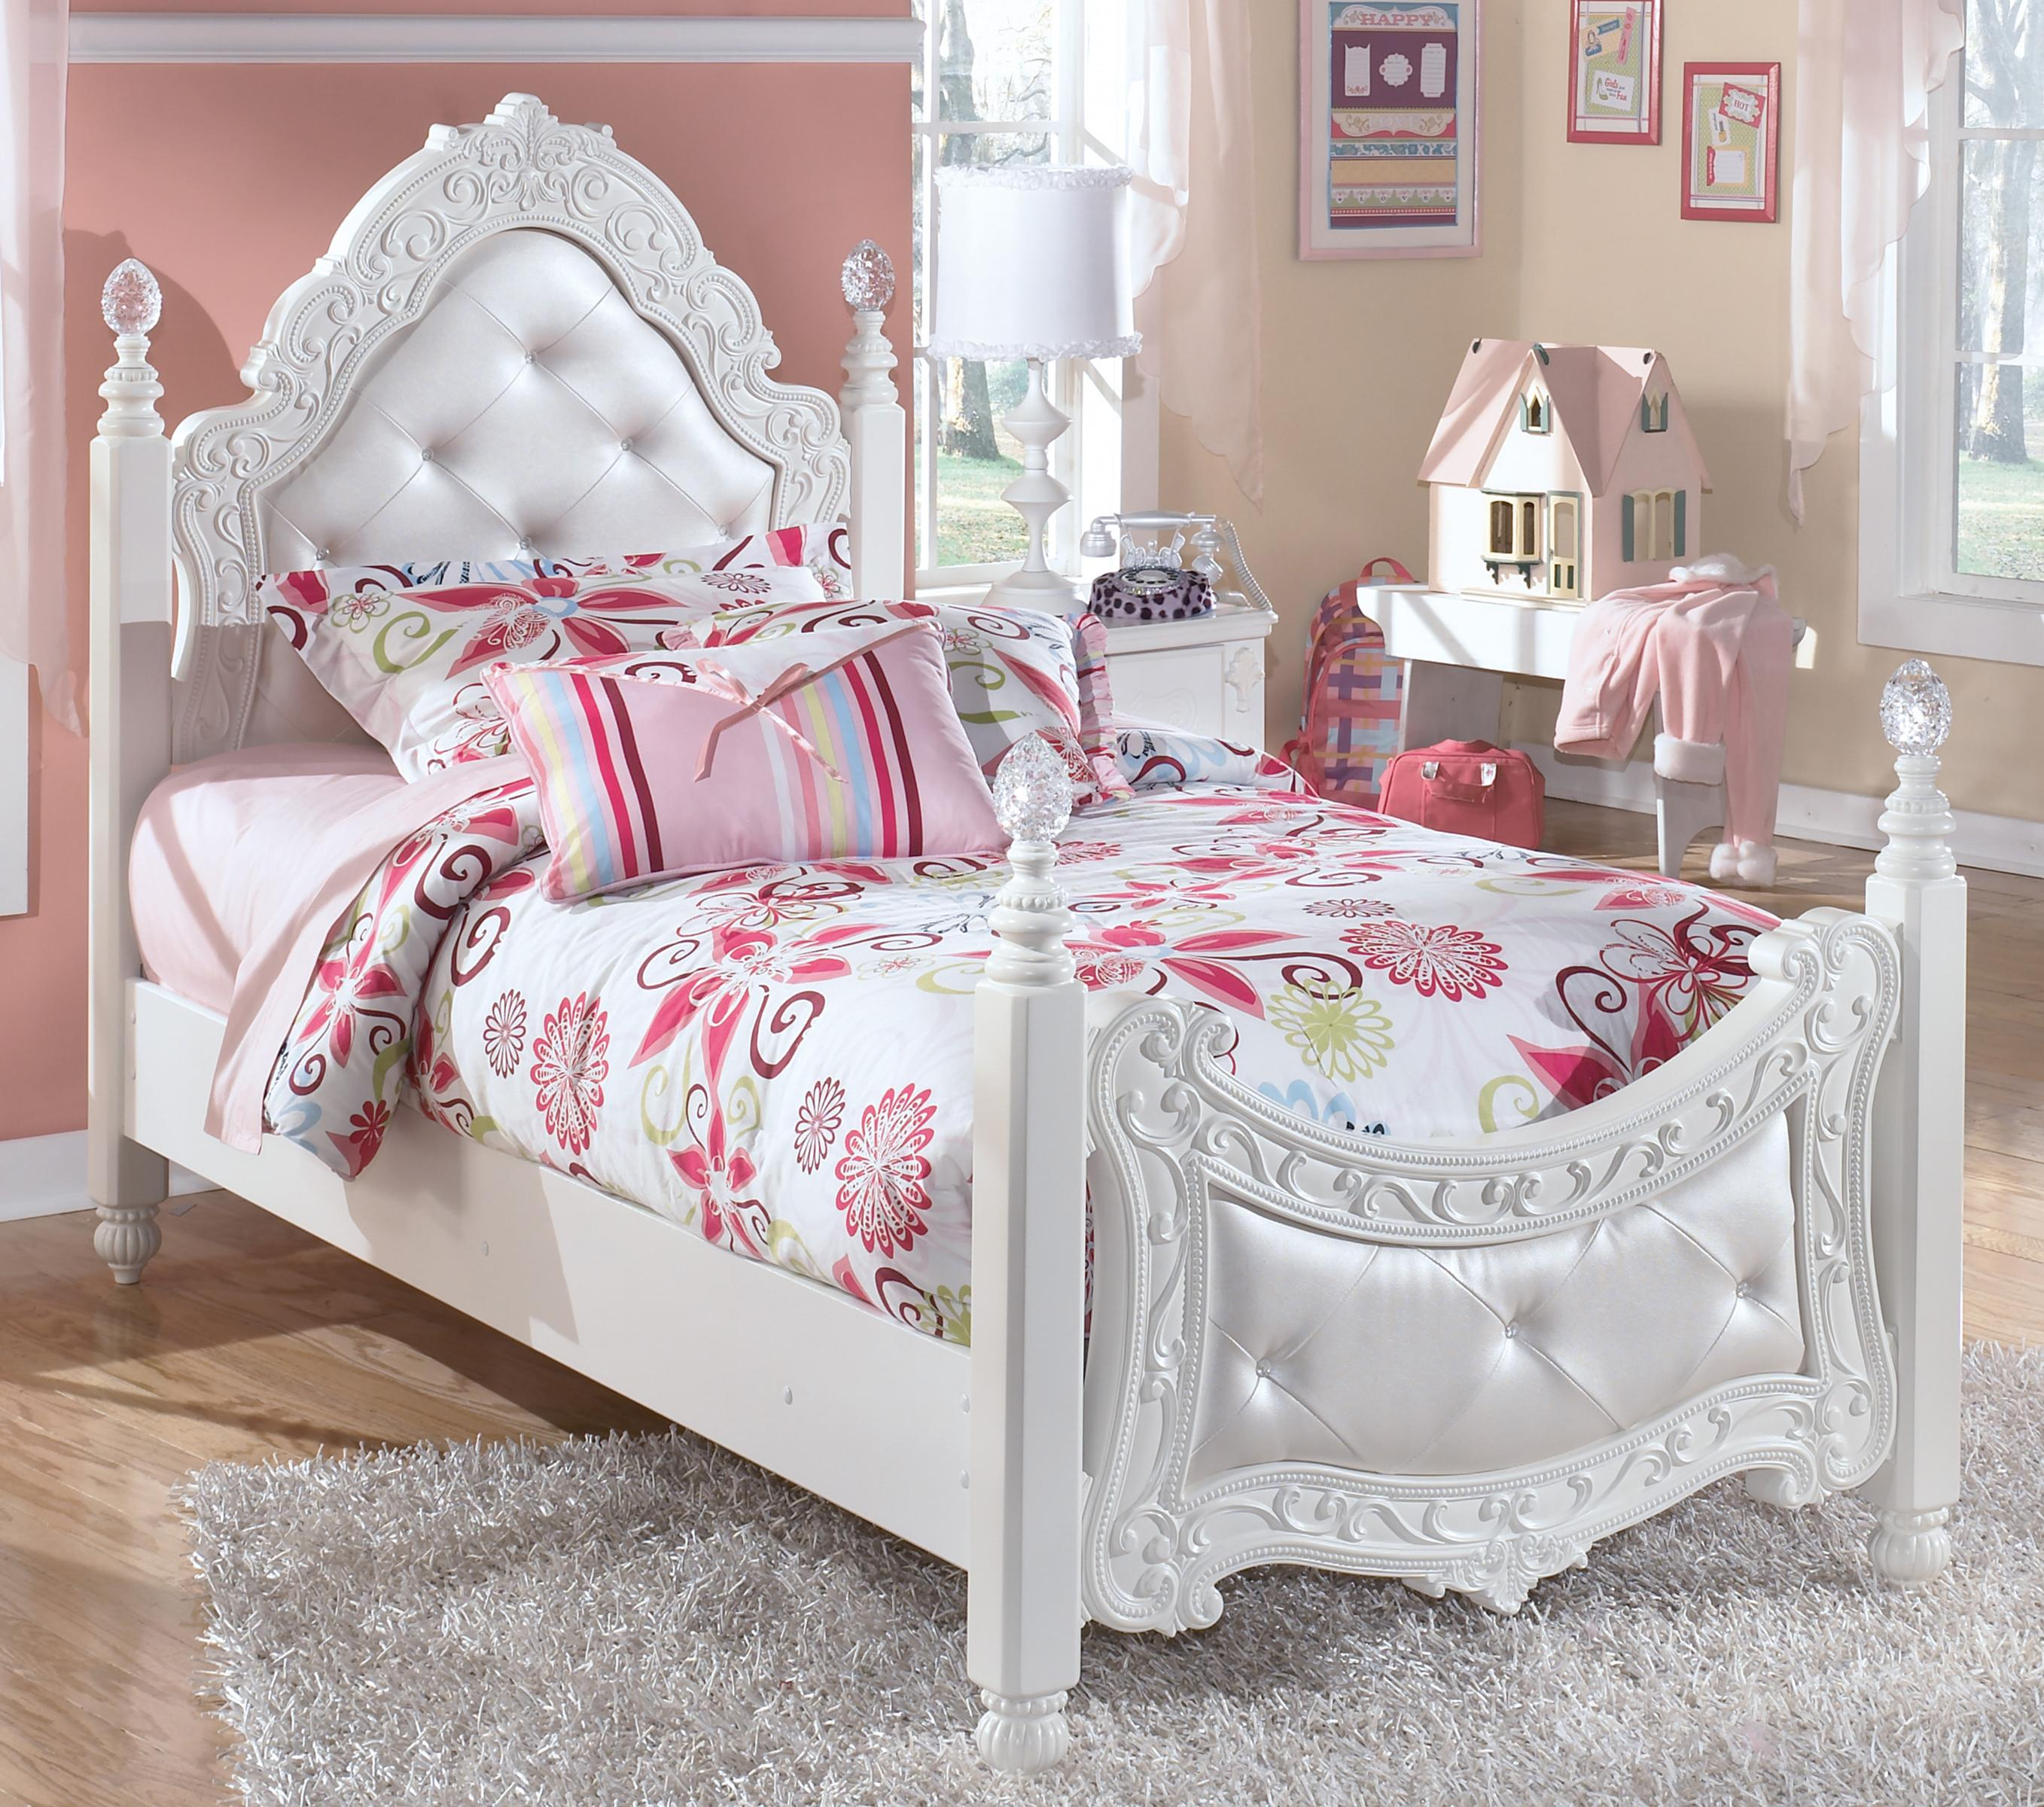 Signature Design by Ashley Exquisite Twin Ornate Poster Bed with Tufted Headboard & Footboard | Houston's Yuma Furniture | Upholstered Beds